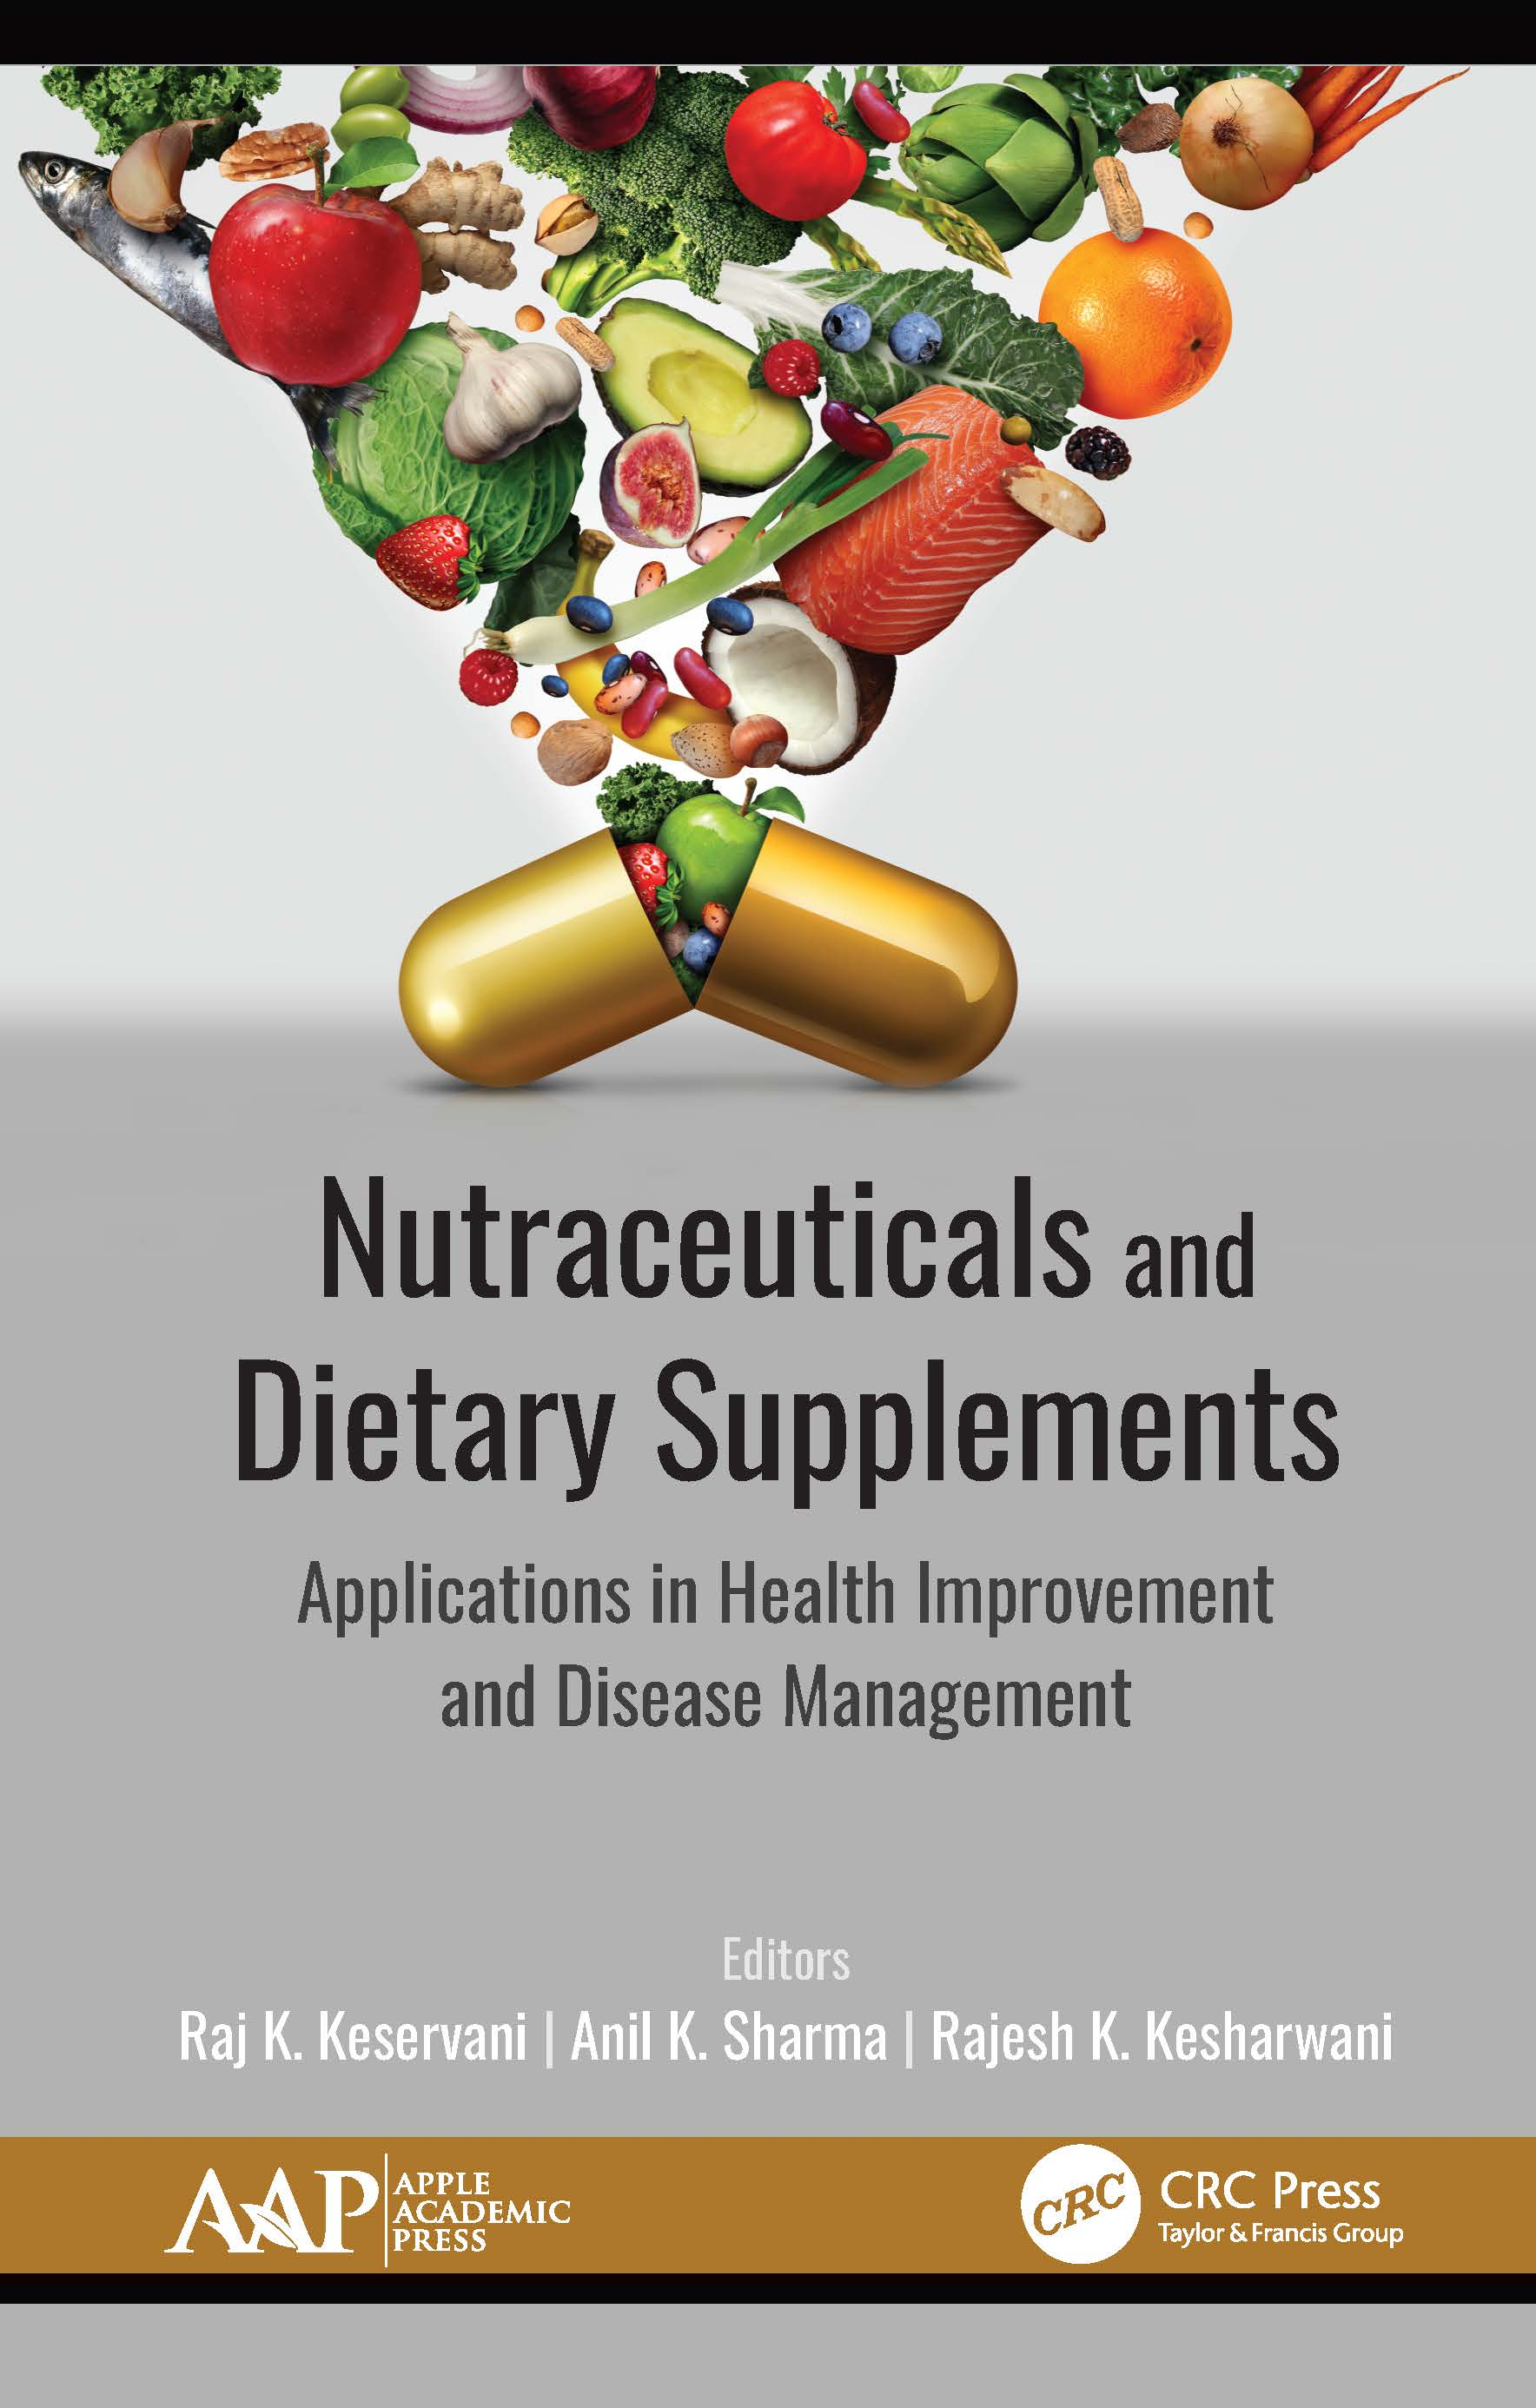 Nutraceuticals and Dietary Supplements: Applications in Health Improvement and Disease Management book cover